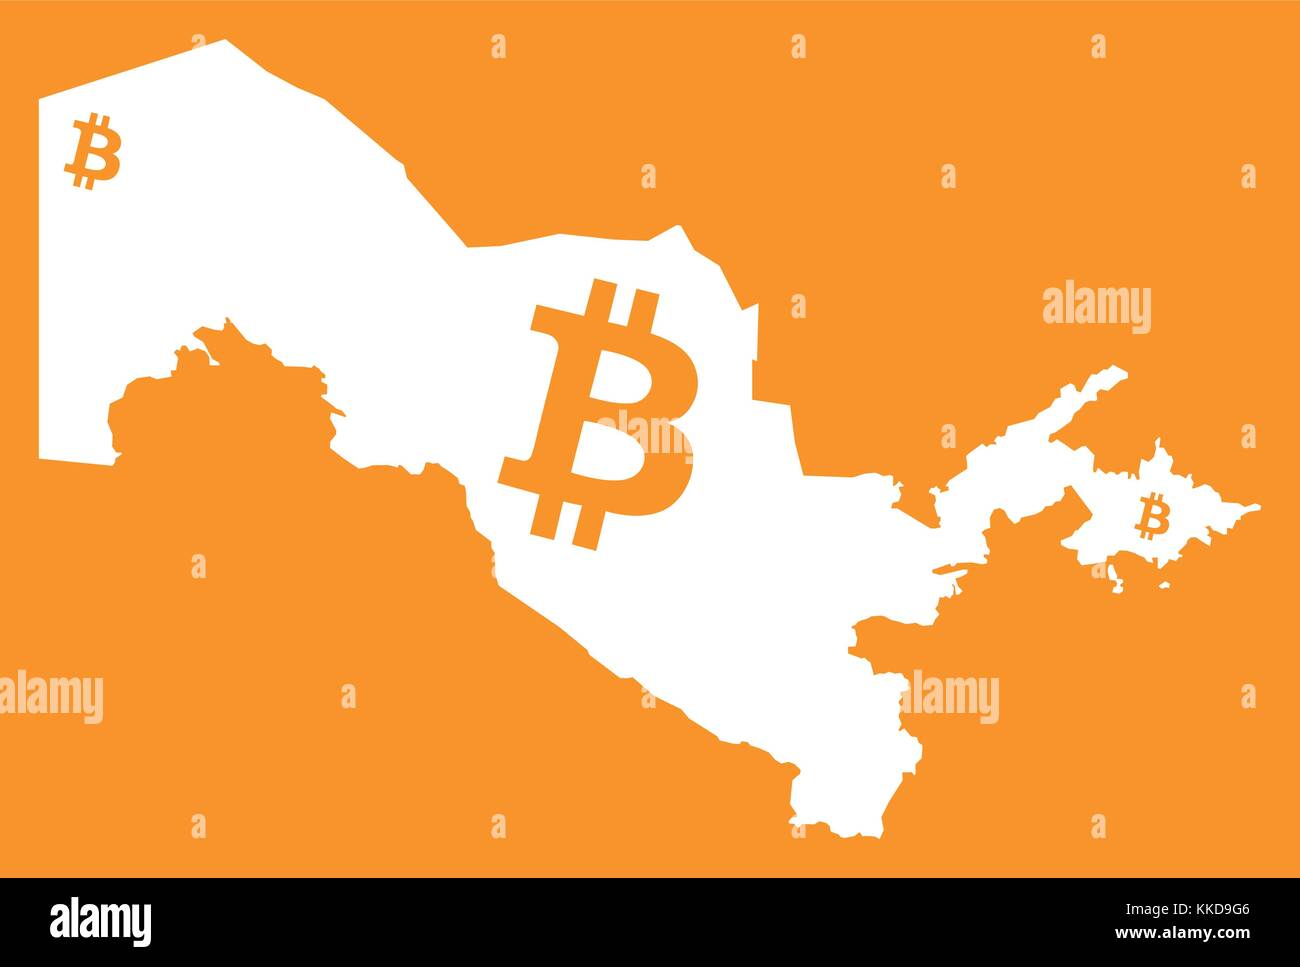 Uzbekistan map with bitcoin crypto currency symbol illustration uzbekistan map with bitcoin crypto currency symbol illustration buycottarizona